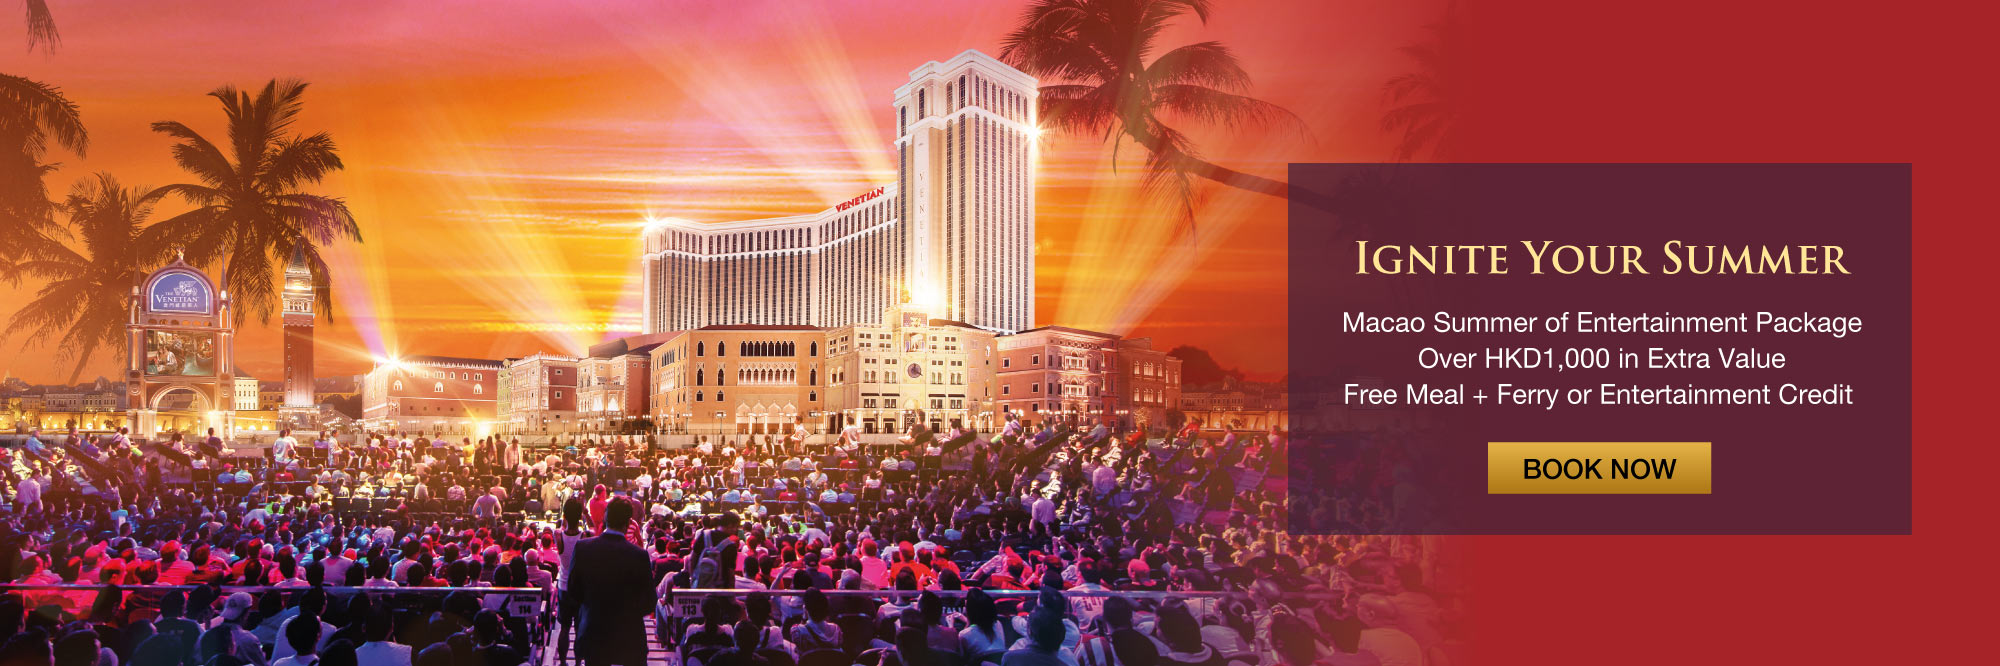 Macao Summer of Entertainment Package